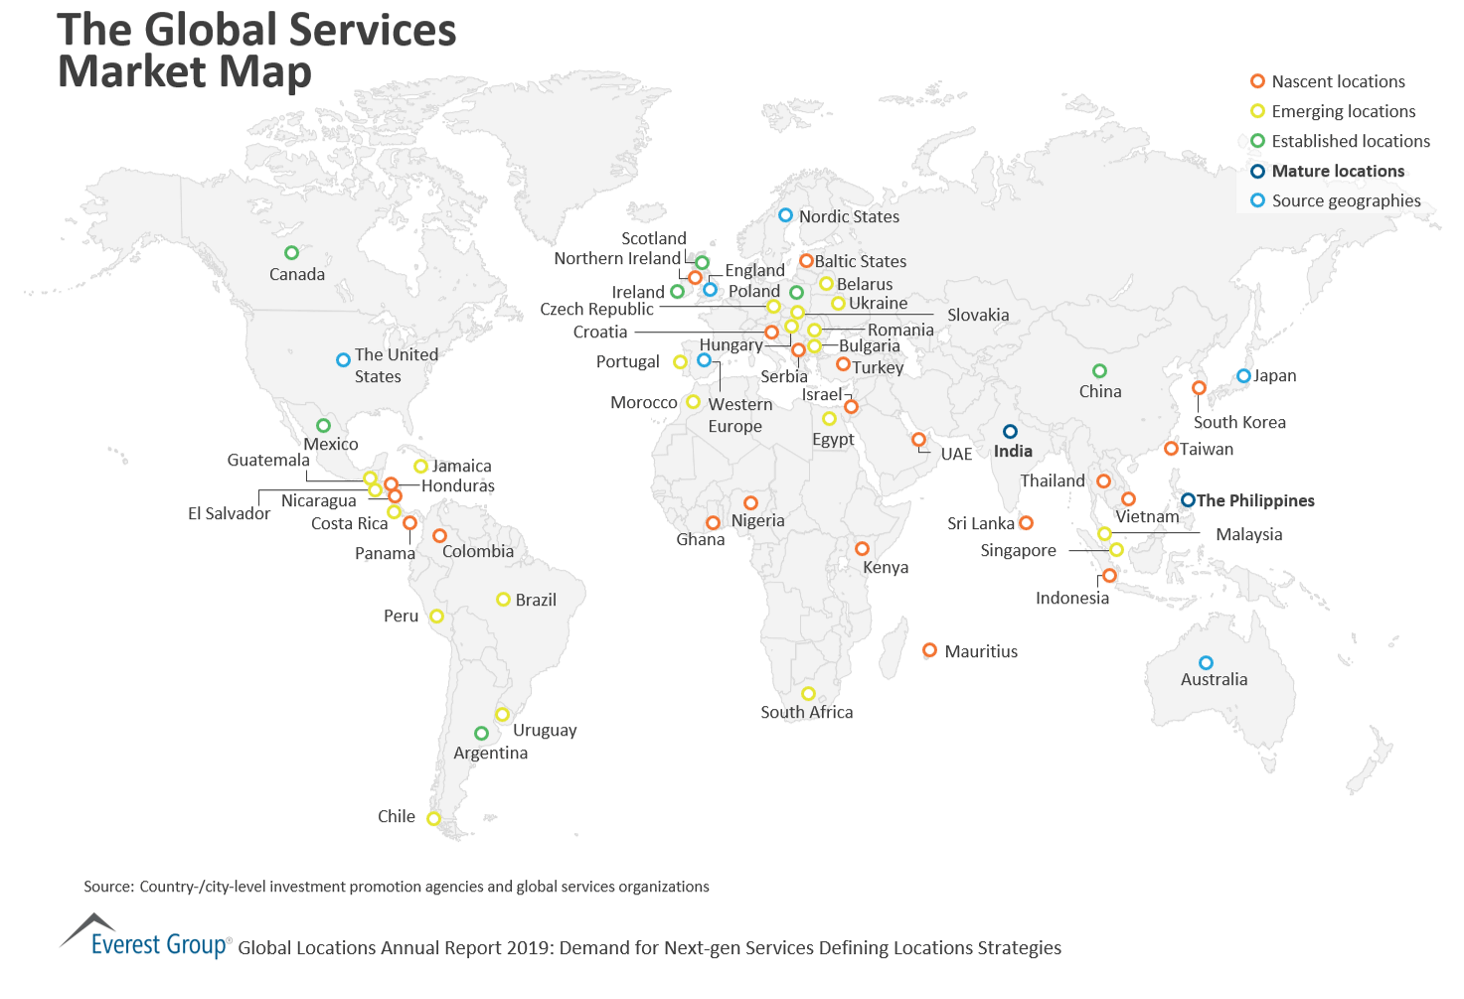 The Global Services Market Map